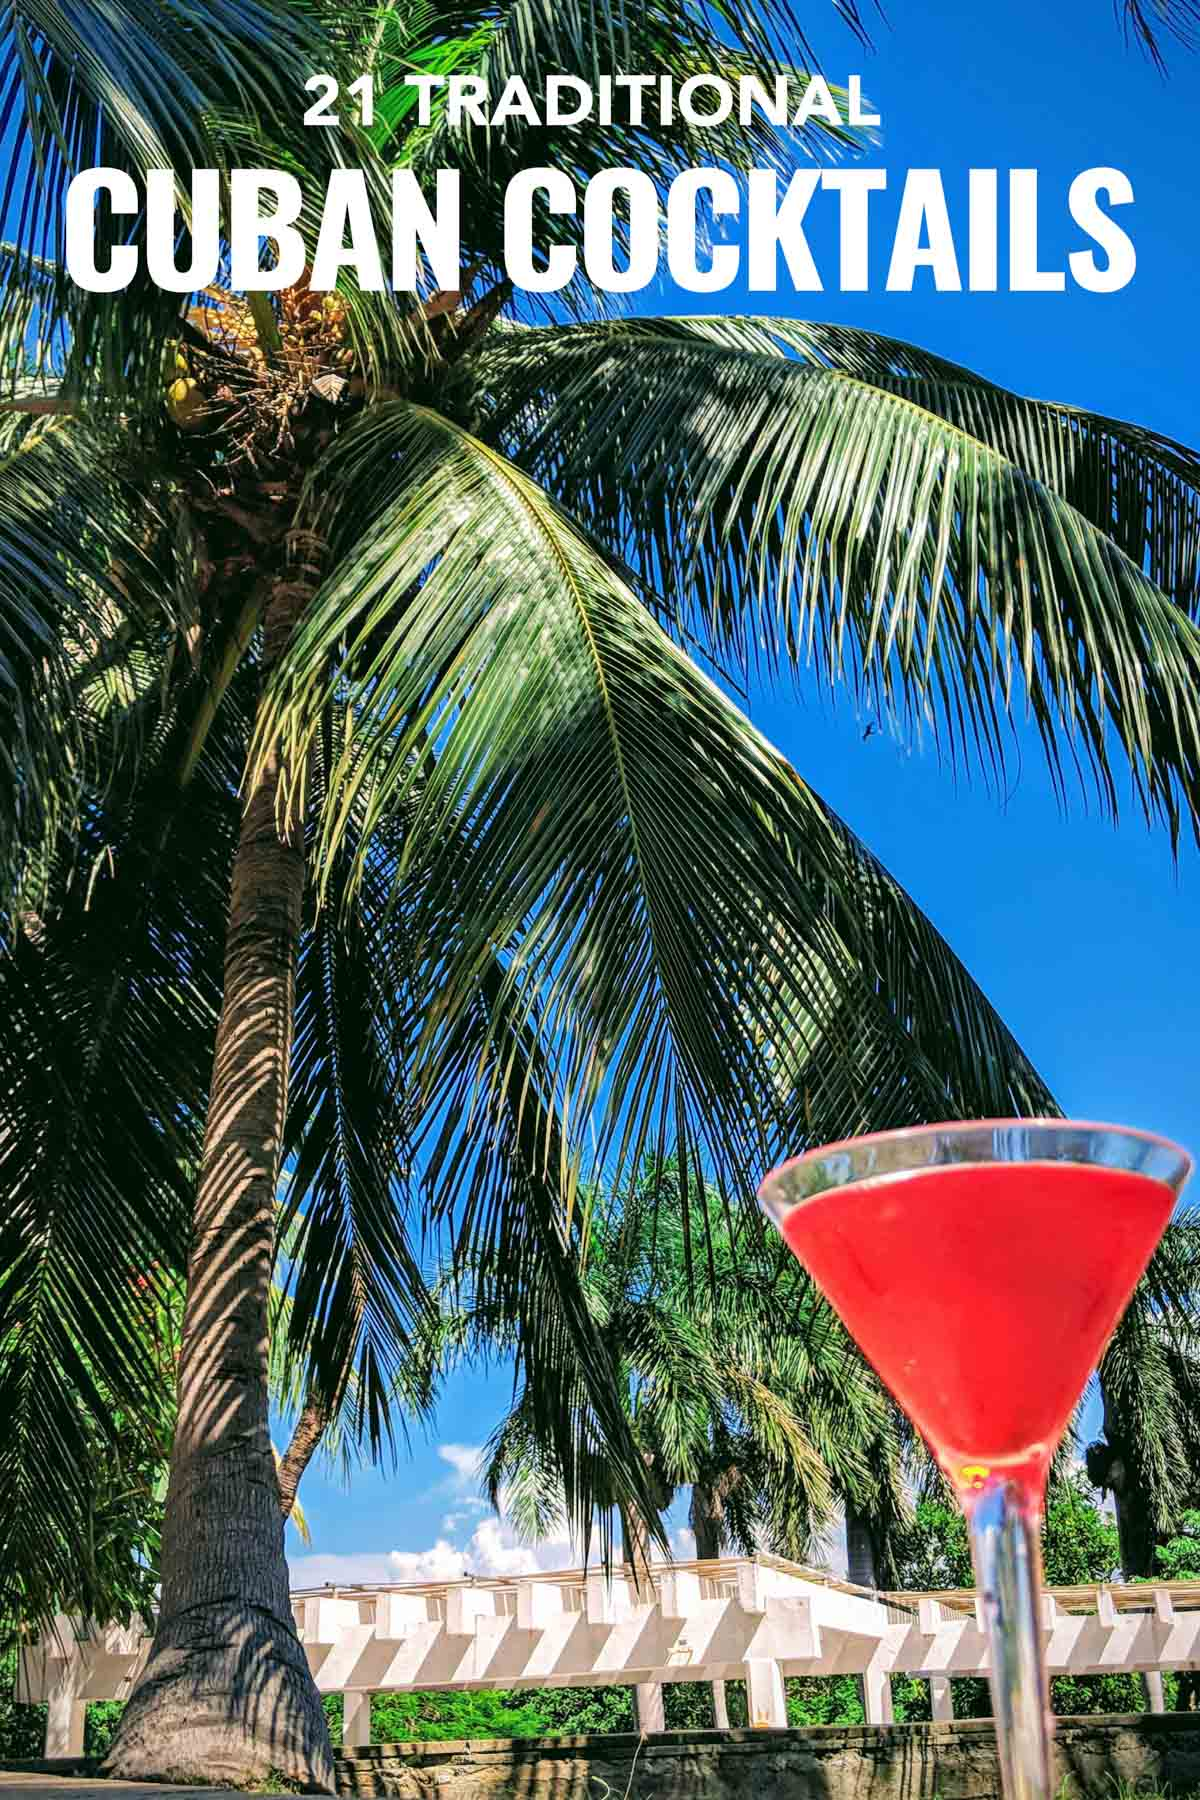 Cuban drinks are more than mojitos, discover the 21 Cuban drinks that changed the world.